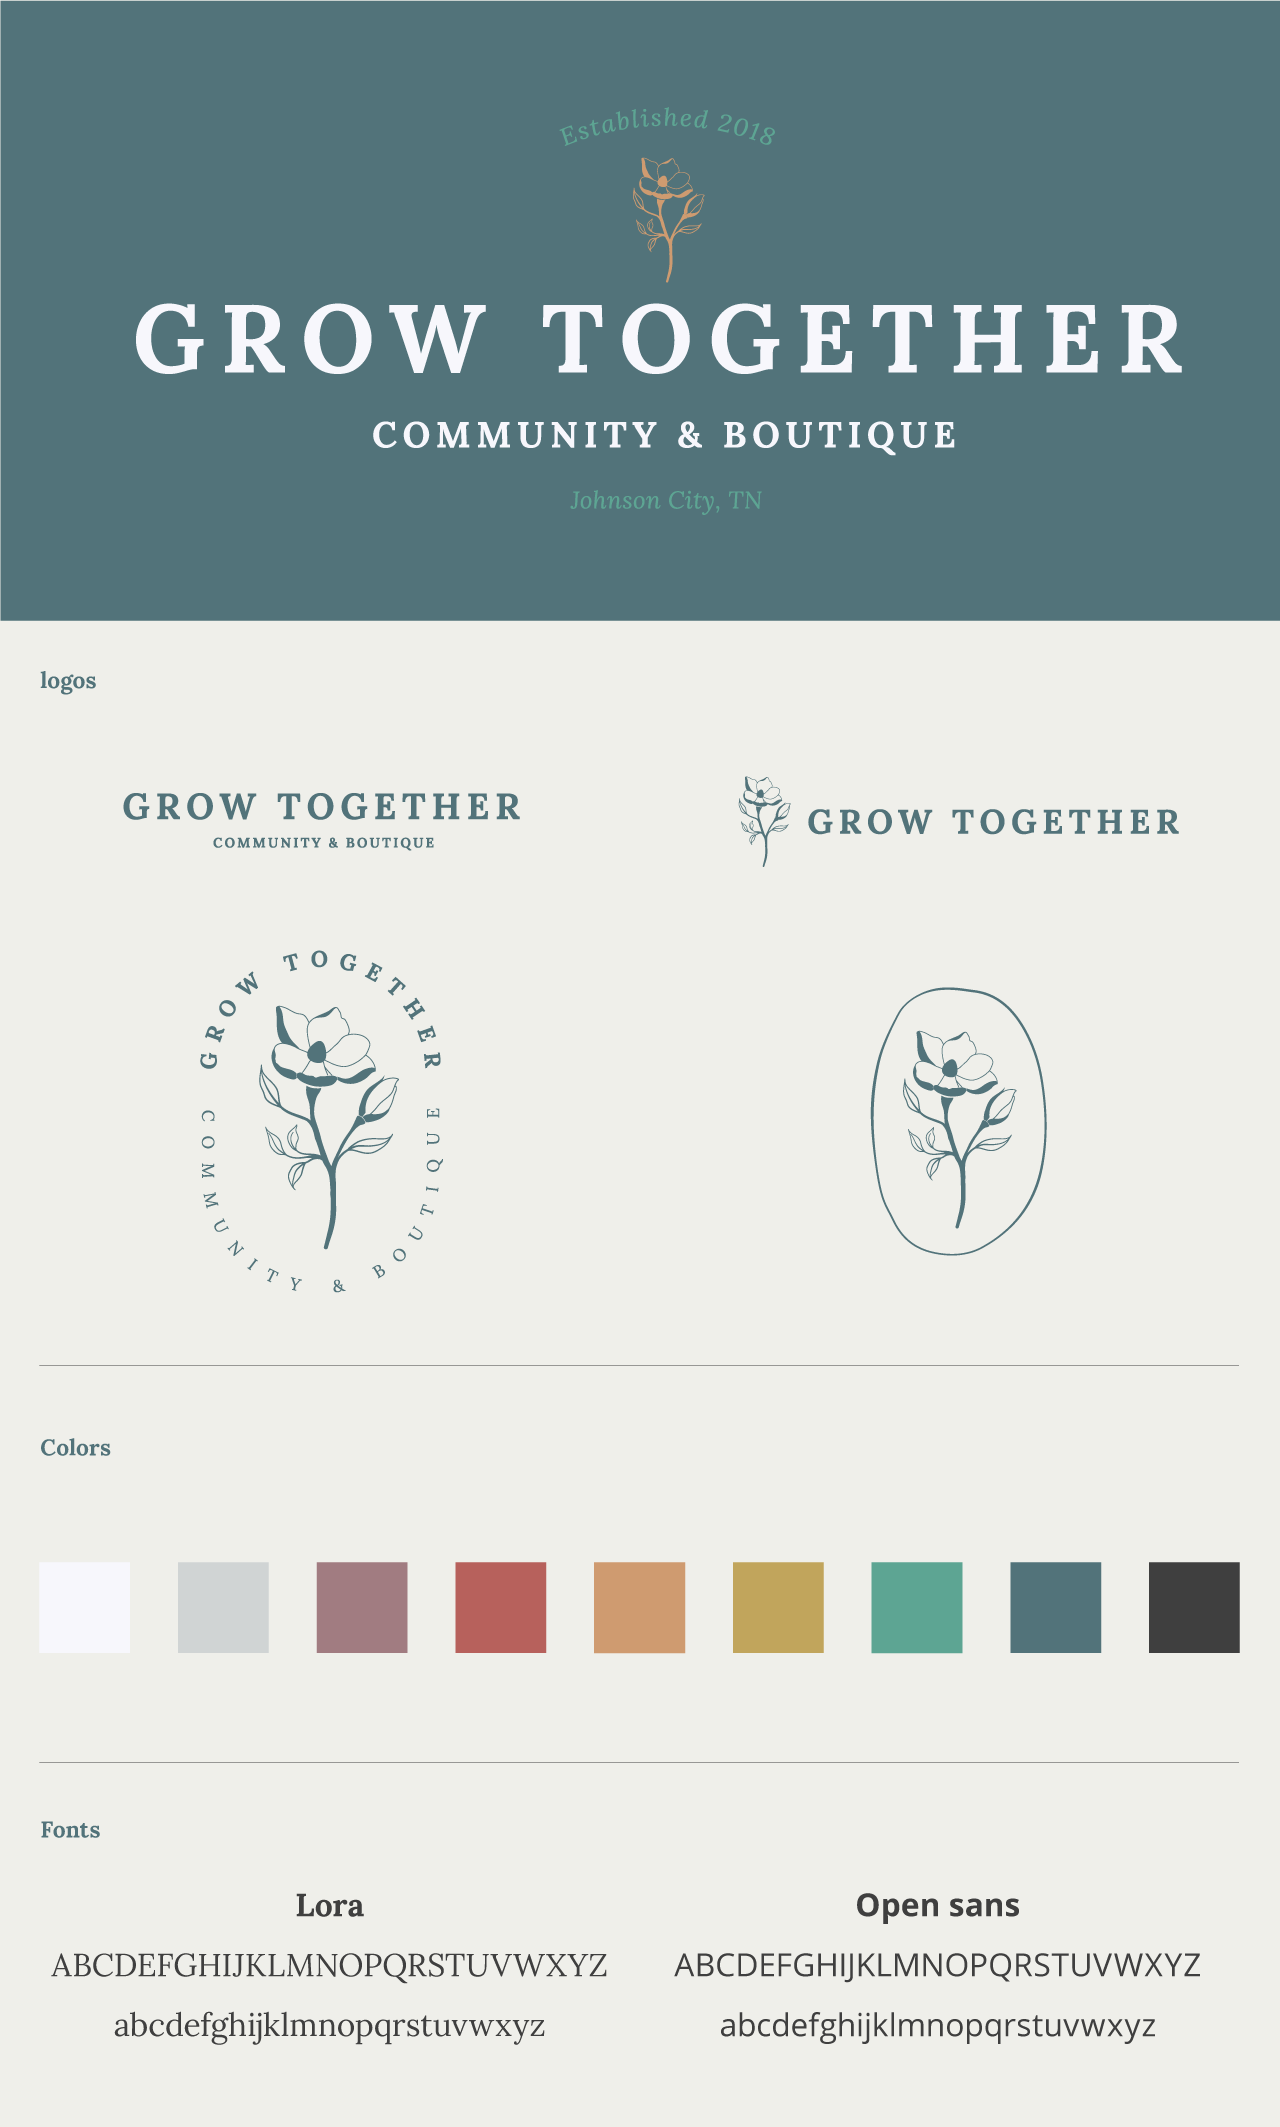 Logo and identity design for Grow Together, a community and boutique for new and expecting moms